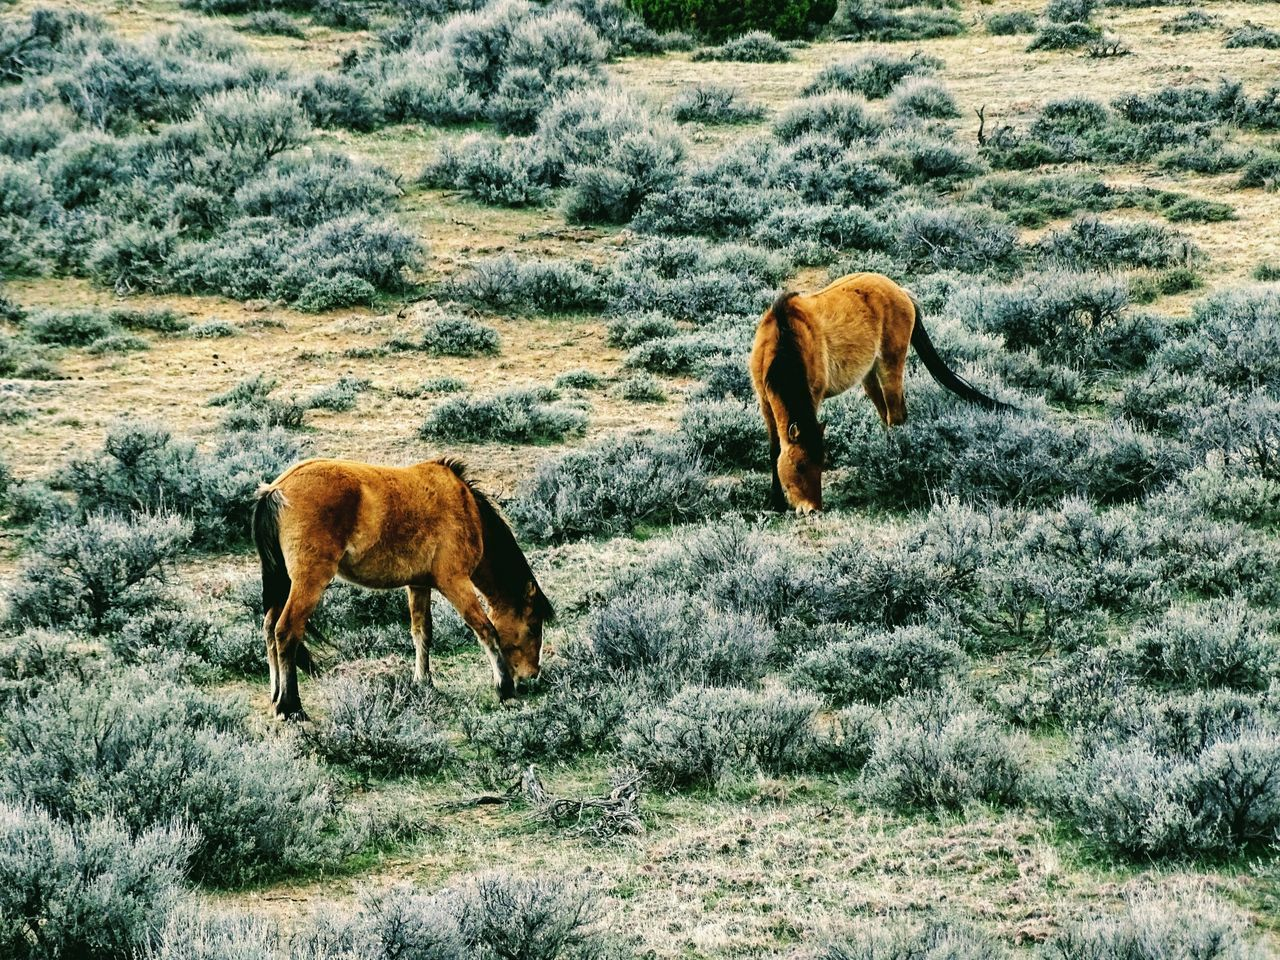 Animal Themes Mammal Herbivorous No People Grazing Outdoors Nature Grass Day Animals In The Wild Animal Wildlife Two Animals Grazing Sagebrush Wyoming Wild Horses Beauty In Nature Nature Standing